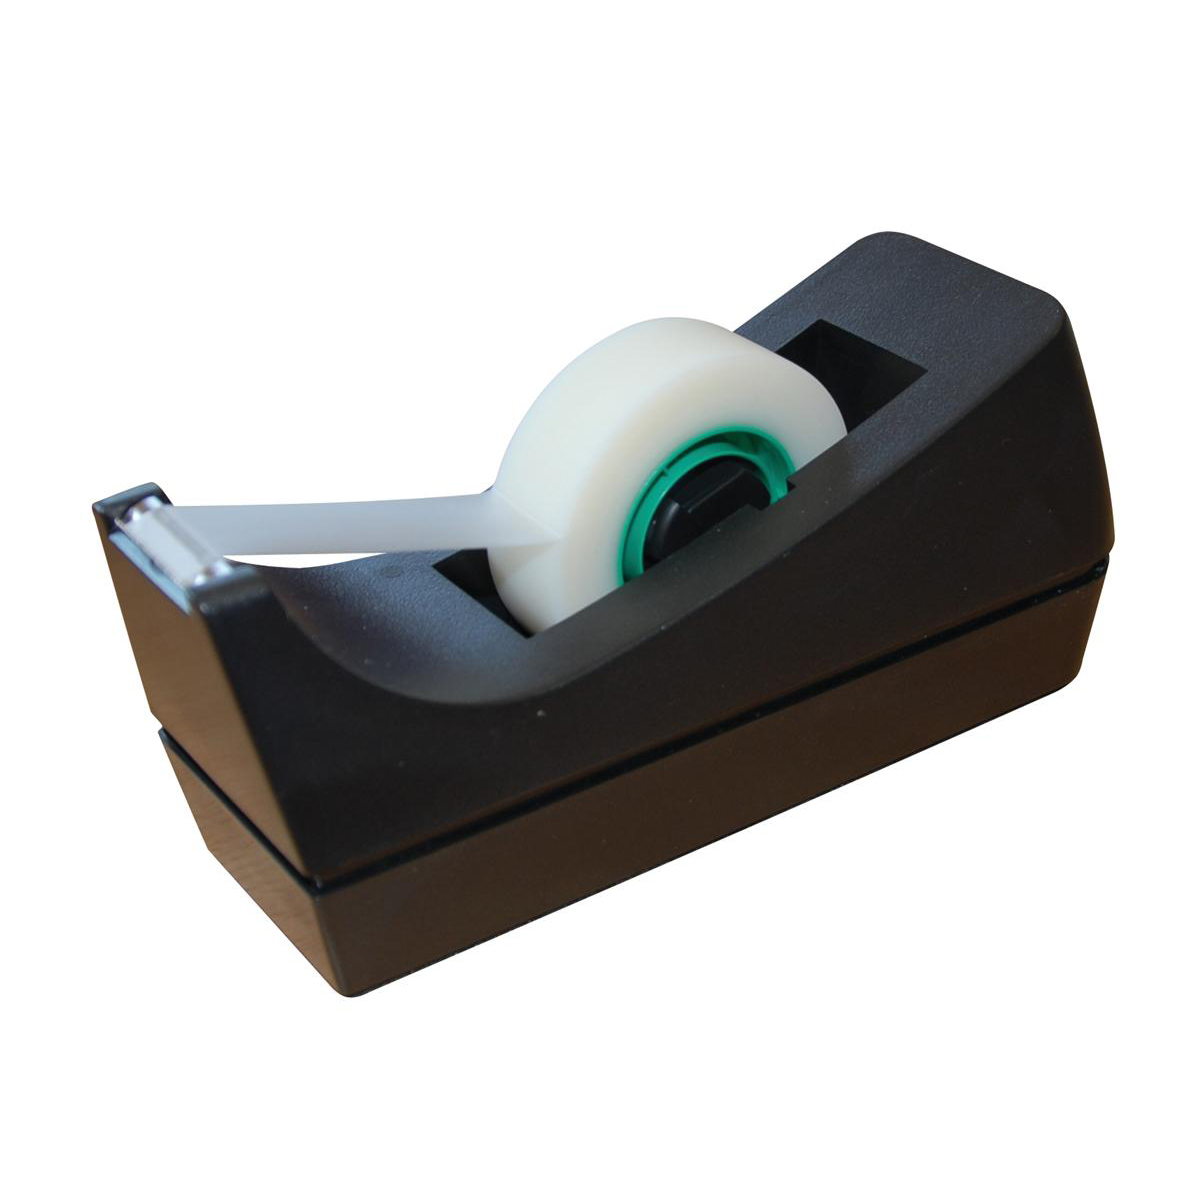 Tape Dispensers 5 Star Office Tape Dispenser Desktop Roll Capacity 25mm Width 33m Length Black